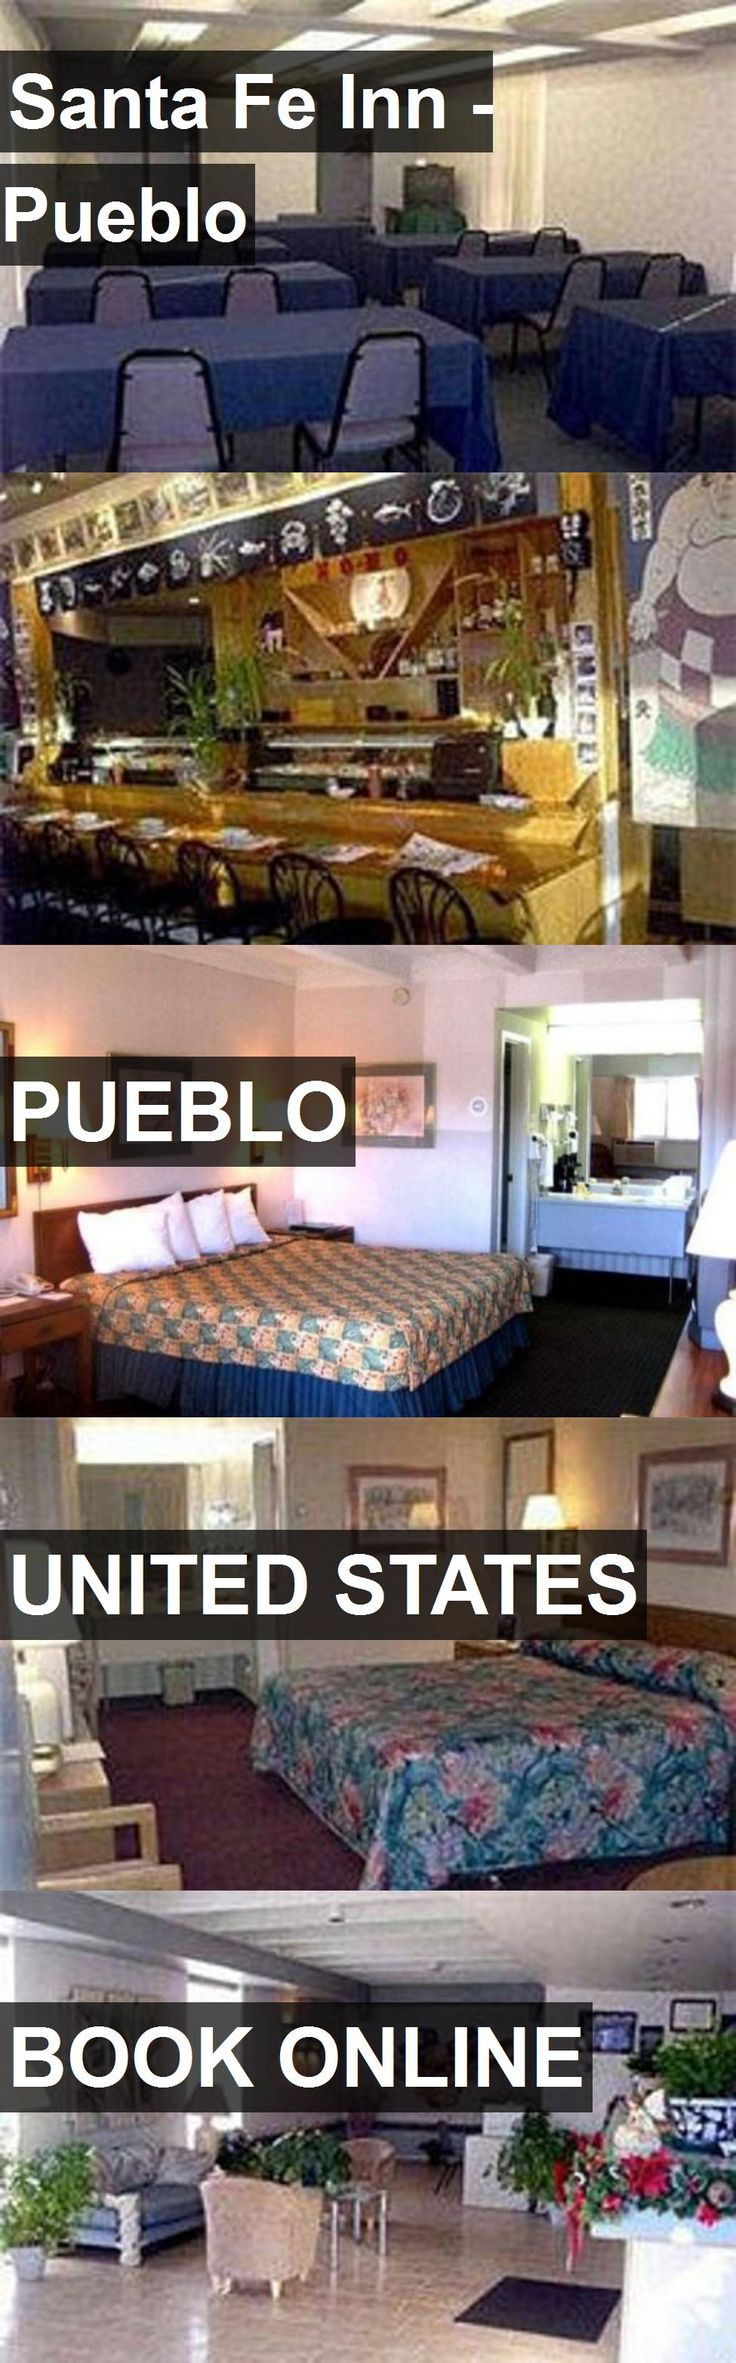 Hotel Santa Fe Inn - Pueblo in Pueblo, United States. For more information, photos, reviews and best prices please follow the link. #UnitedStates #Pueblo #travel #vacation #hotel